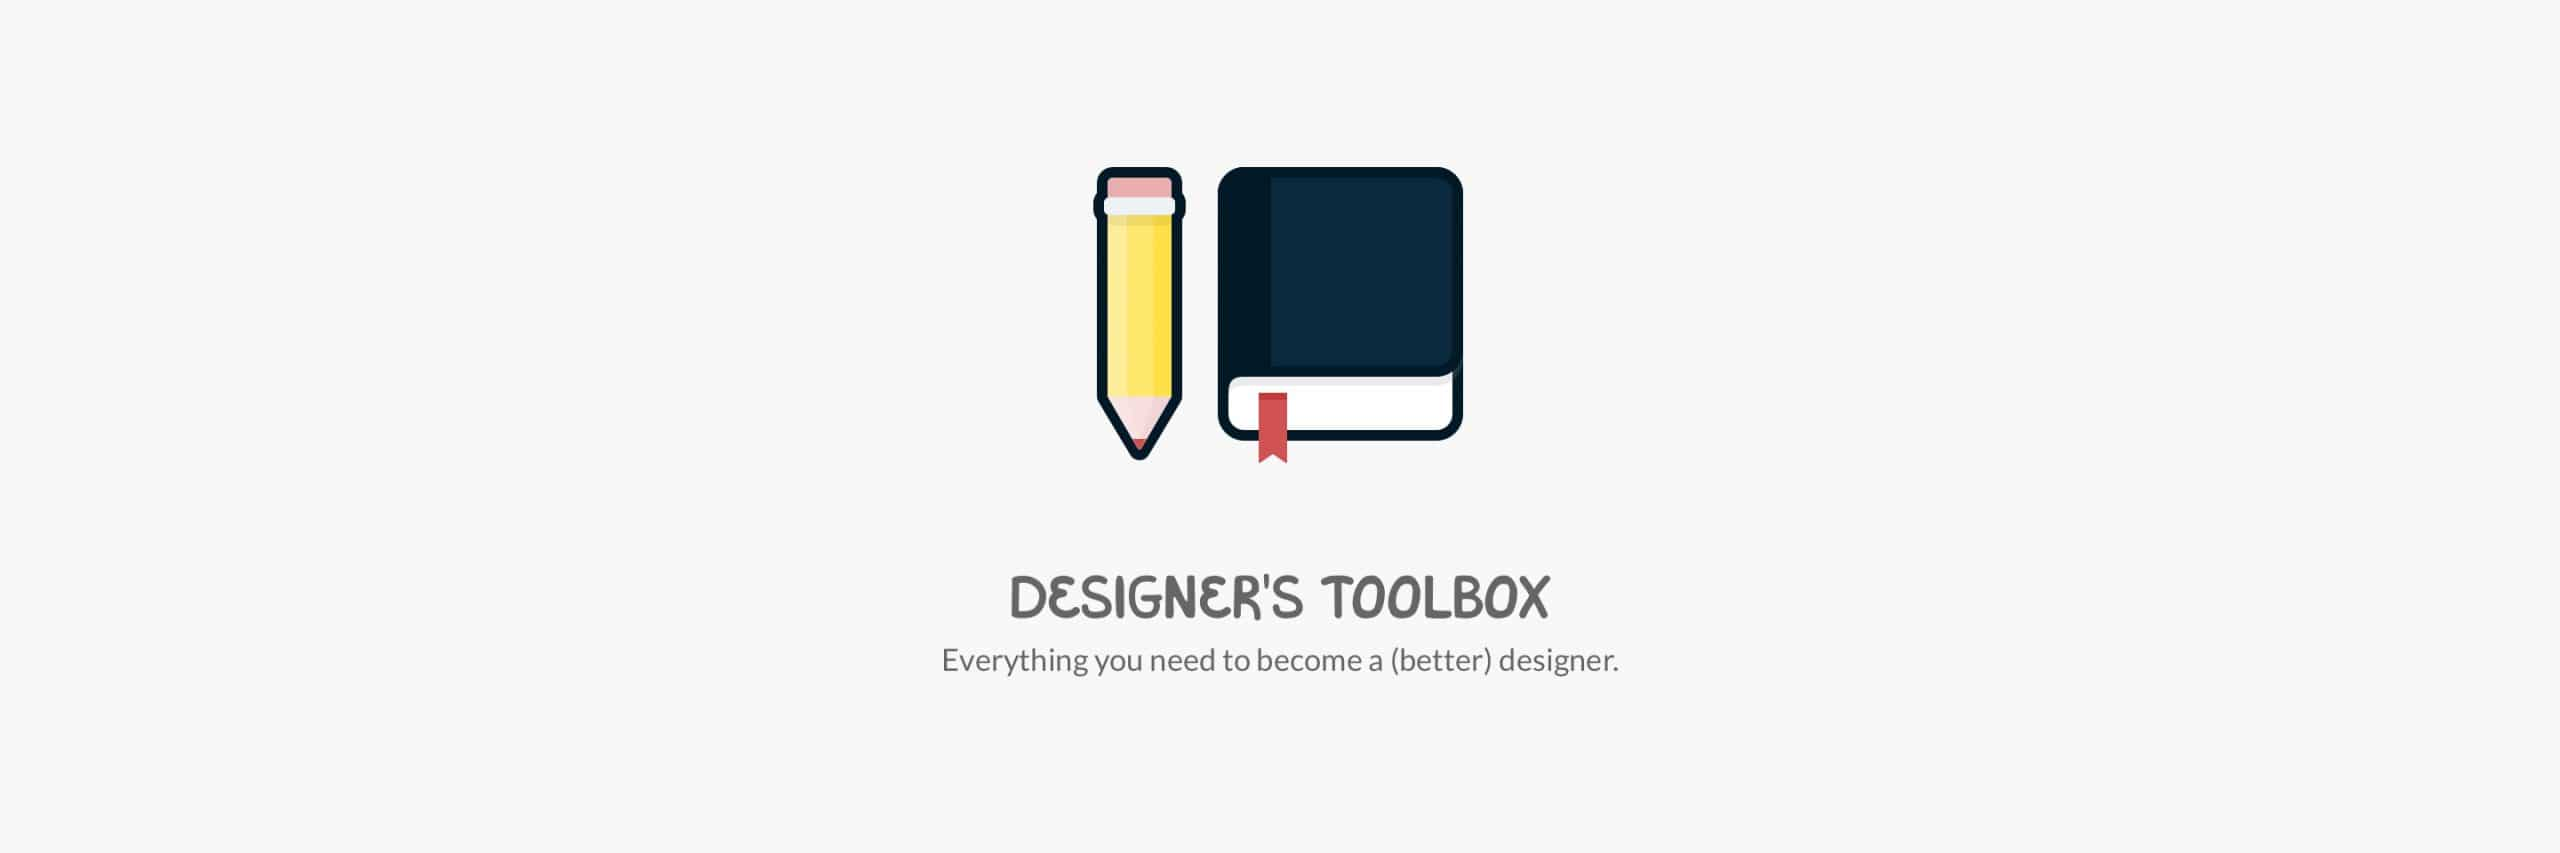 The Designer's Toolbox